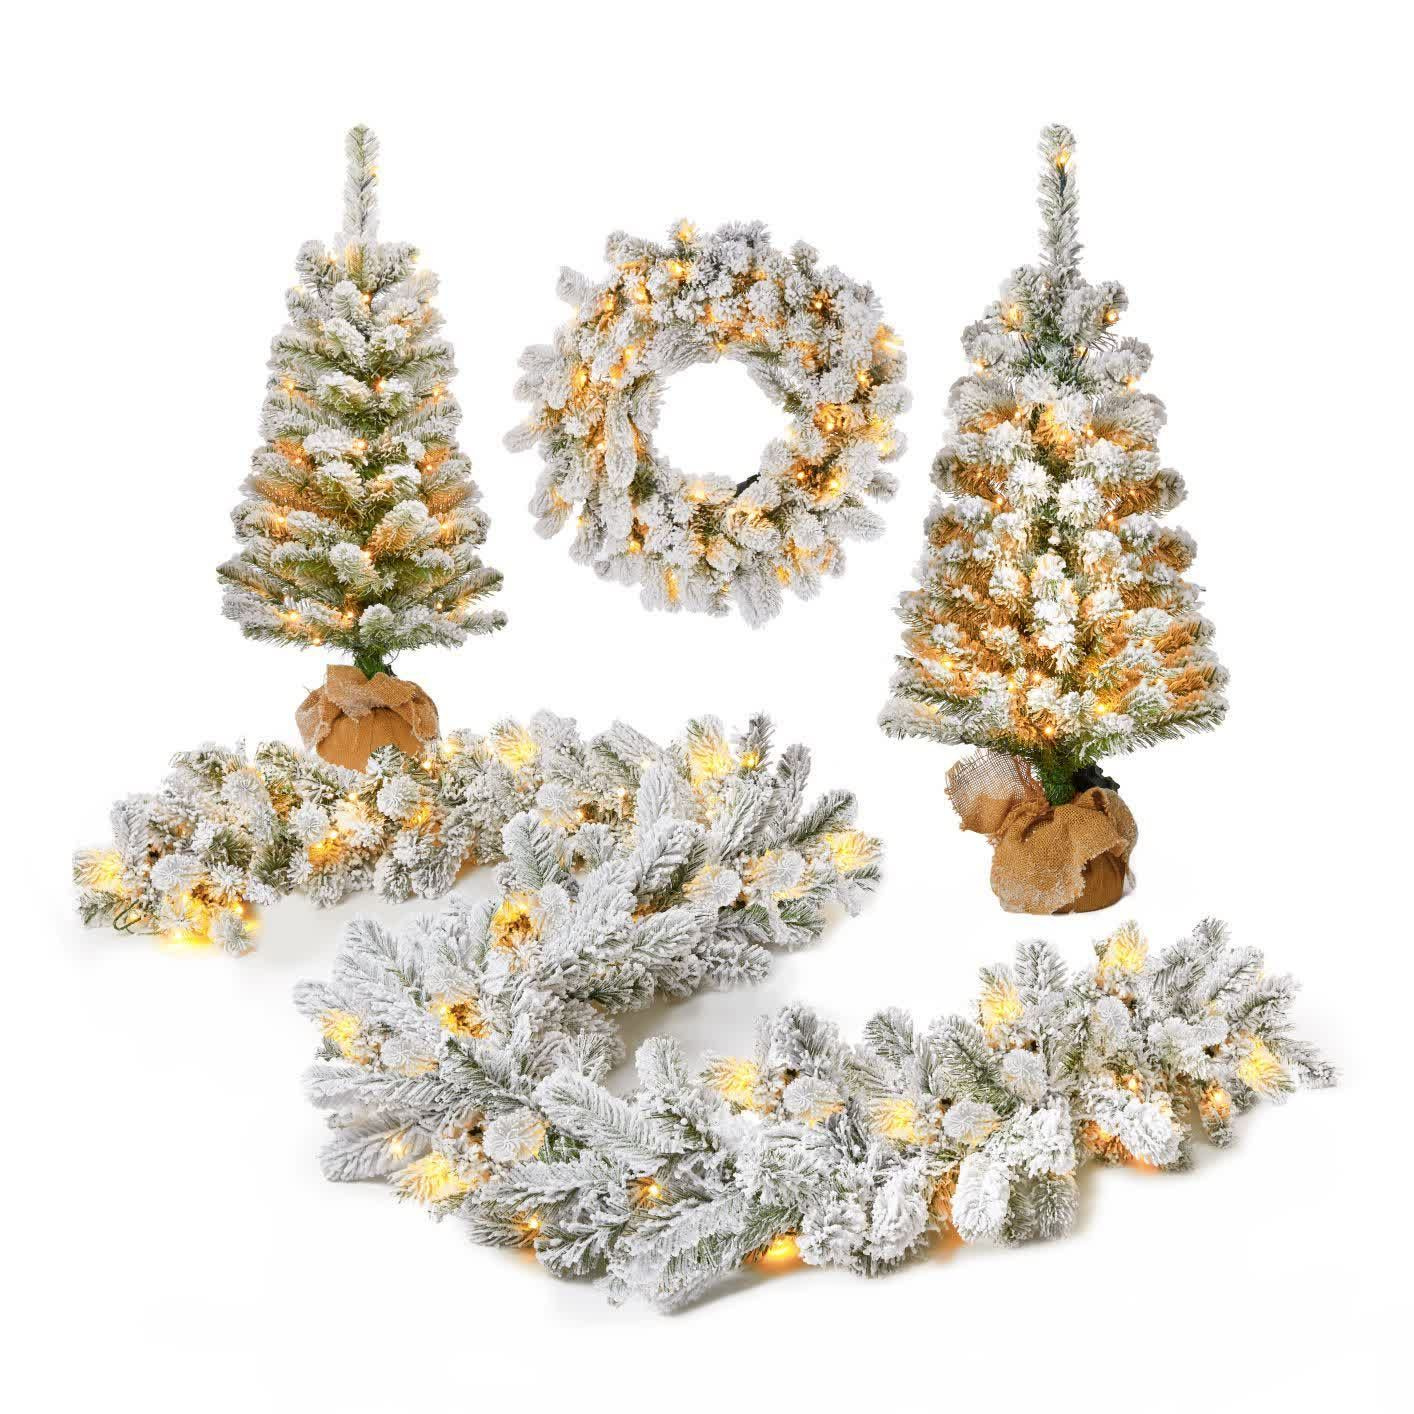 Get 10% off this already ON-SALE 4-piece flocked pre-lit set of garland, wreath and topiaries from King of Christmas. Use code THEFOODIESFITHOME at checkout for your discount! #flockedtree #flockedchristmastree #flockedwreath #flockedgarland #prelitwreath #prelitchristmastree #prelittree #christmastreesale #holidaysales #discounts #christmascoupon #christmastopiaries #tabletoptree #christmasgoals #affordablechristmastrees #holidayhomeinspo #holidaydeorinspo #holidaydecorgoals